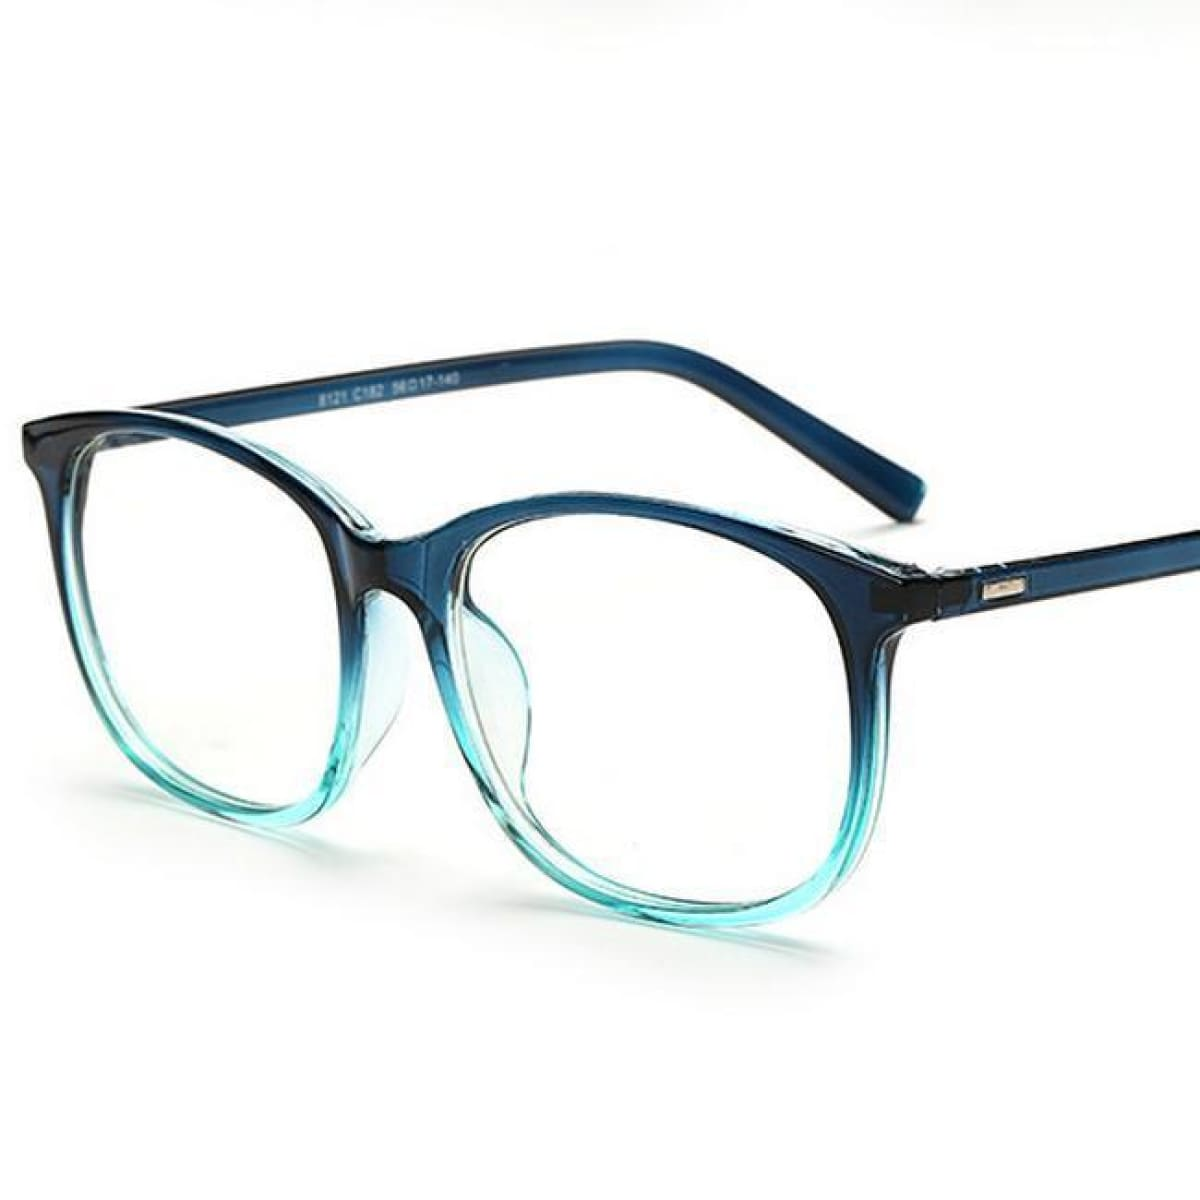 Black and blue round frame luxury Glasses for women - oculos eye ...